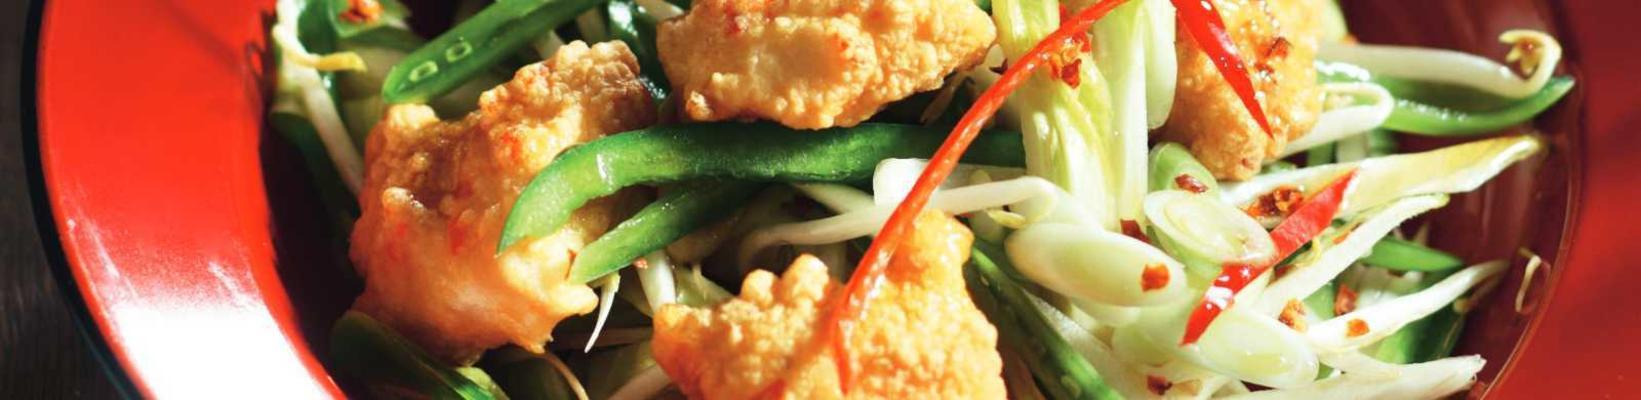 oriental salad with spicy marinated fish